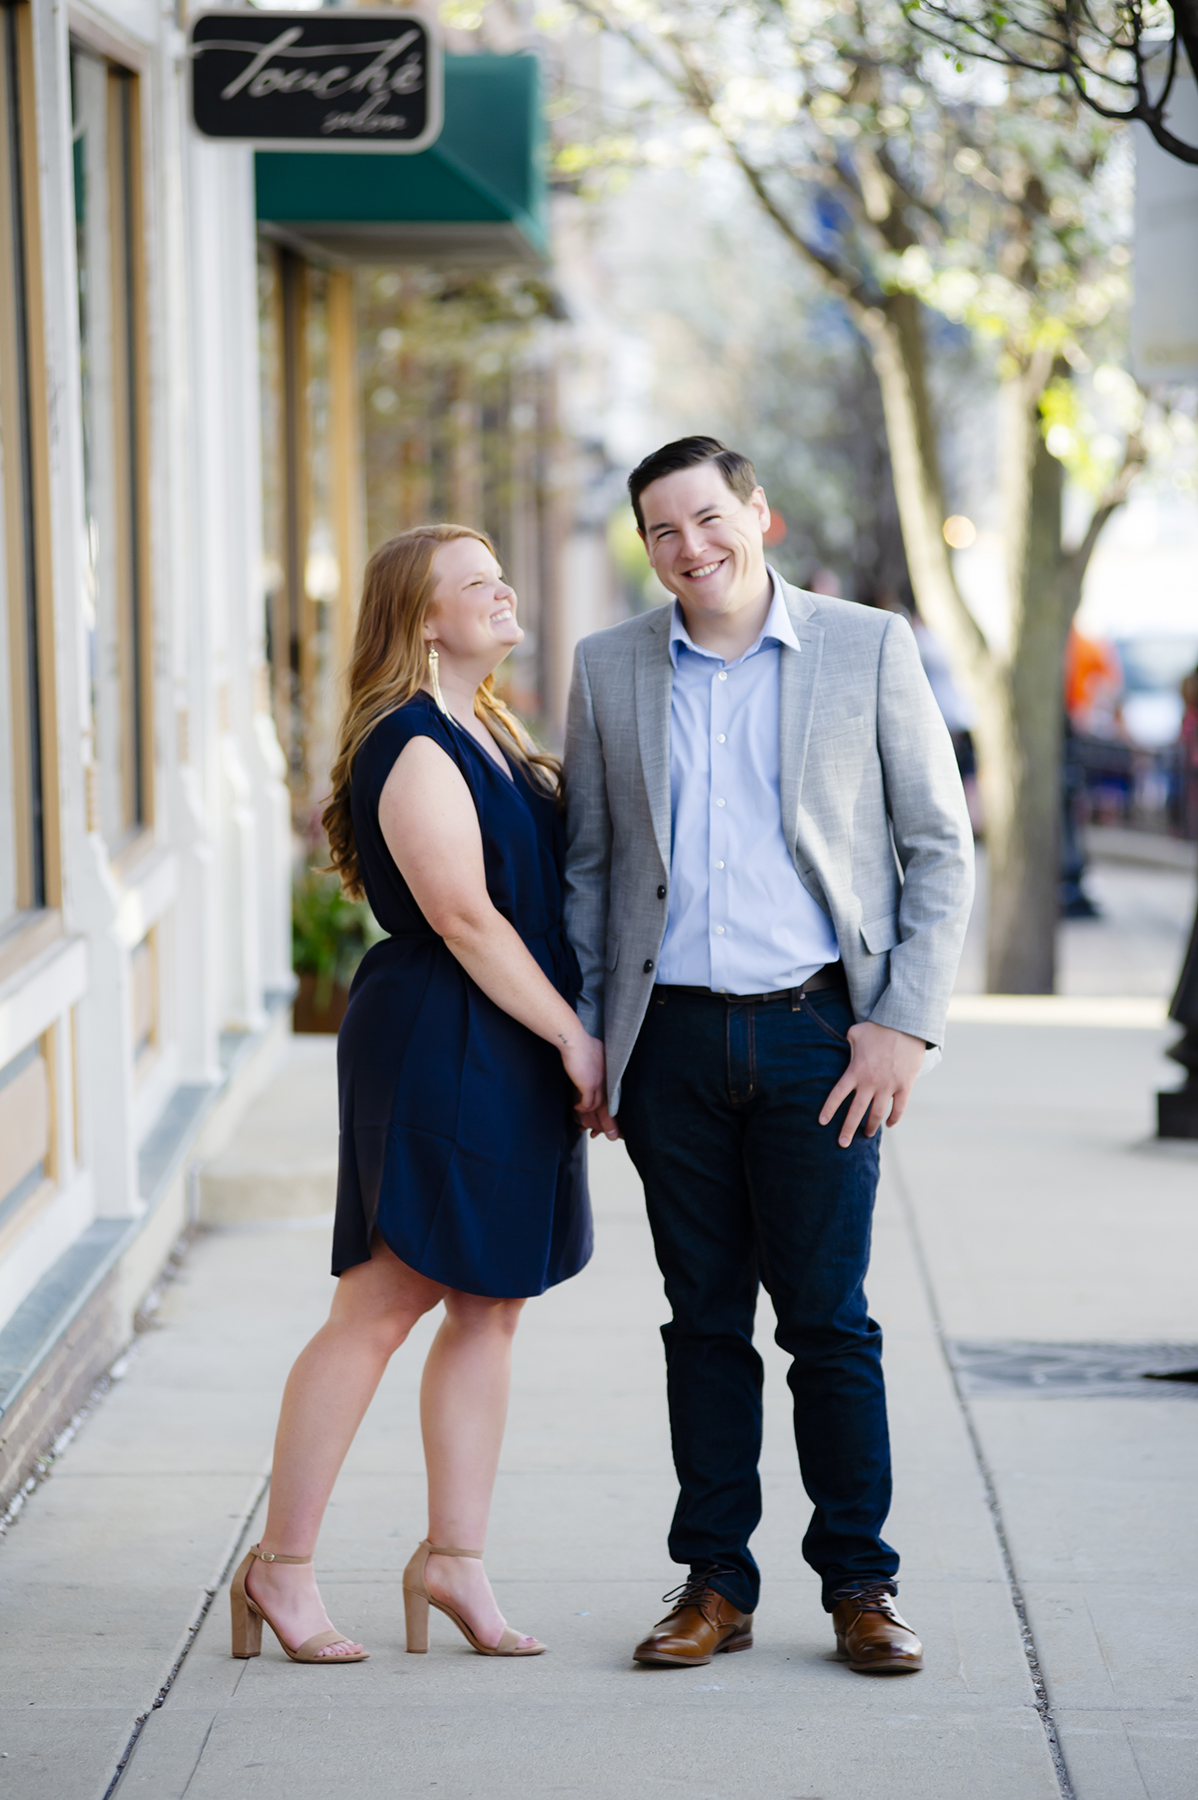 Dory_Engaged_libertyville_love_photographer_wedding_01 copy.jpg